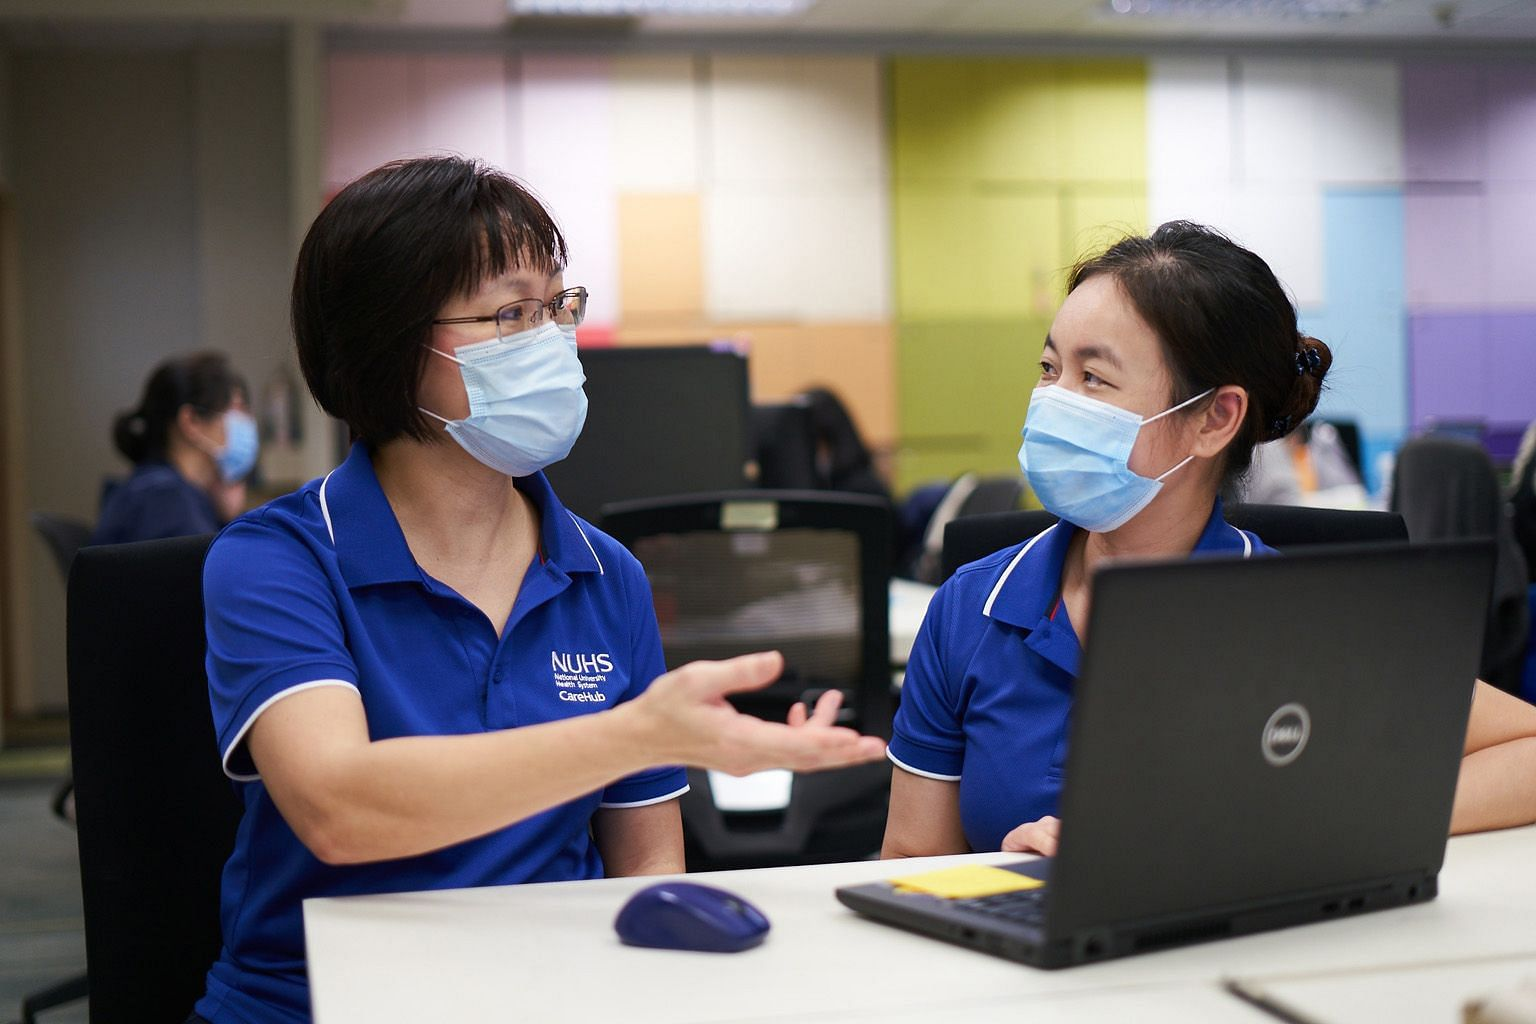 Ms Tay Yee Kian (left), assistant director of nursing at NUHS' Regional Health System Office, seen here with her colleague Yeo Ai Wah, led her team to supervise the set-up for Covid-19 swab testing at 15 nursing homes.